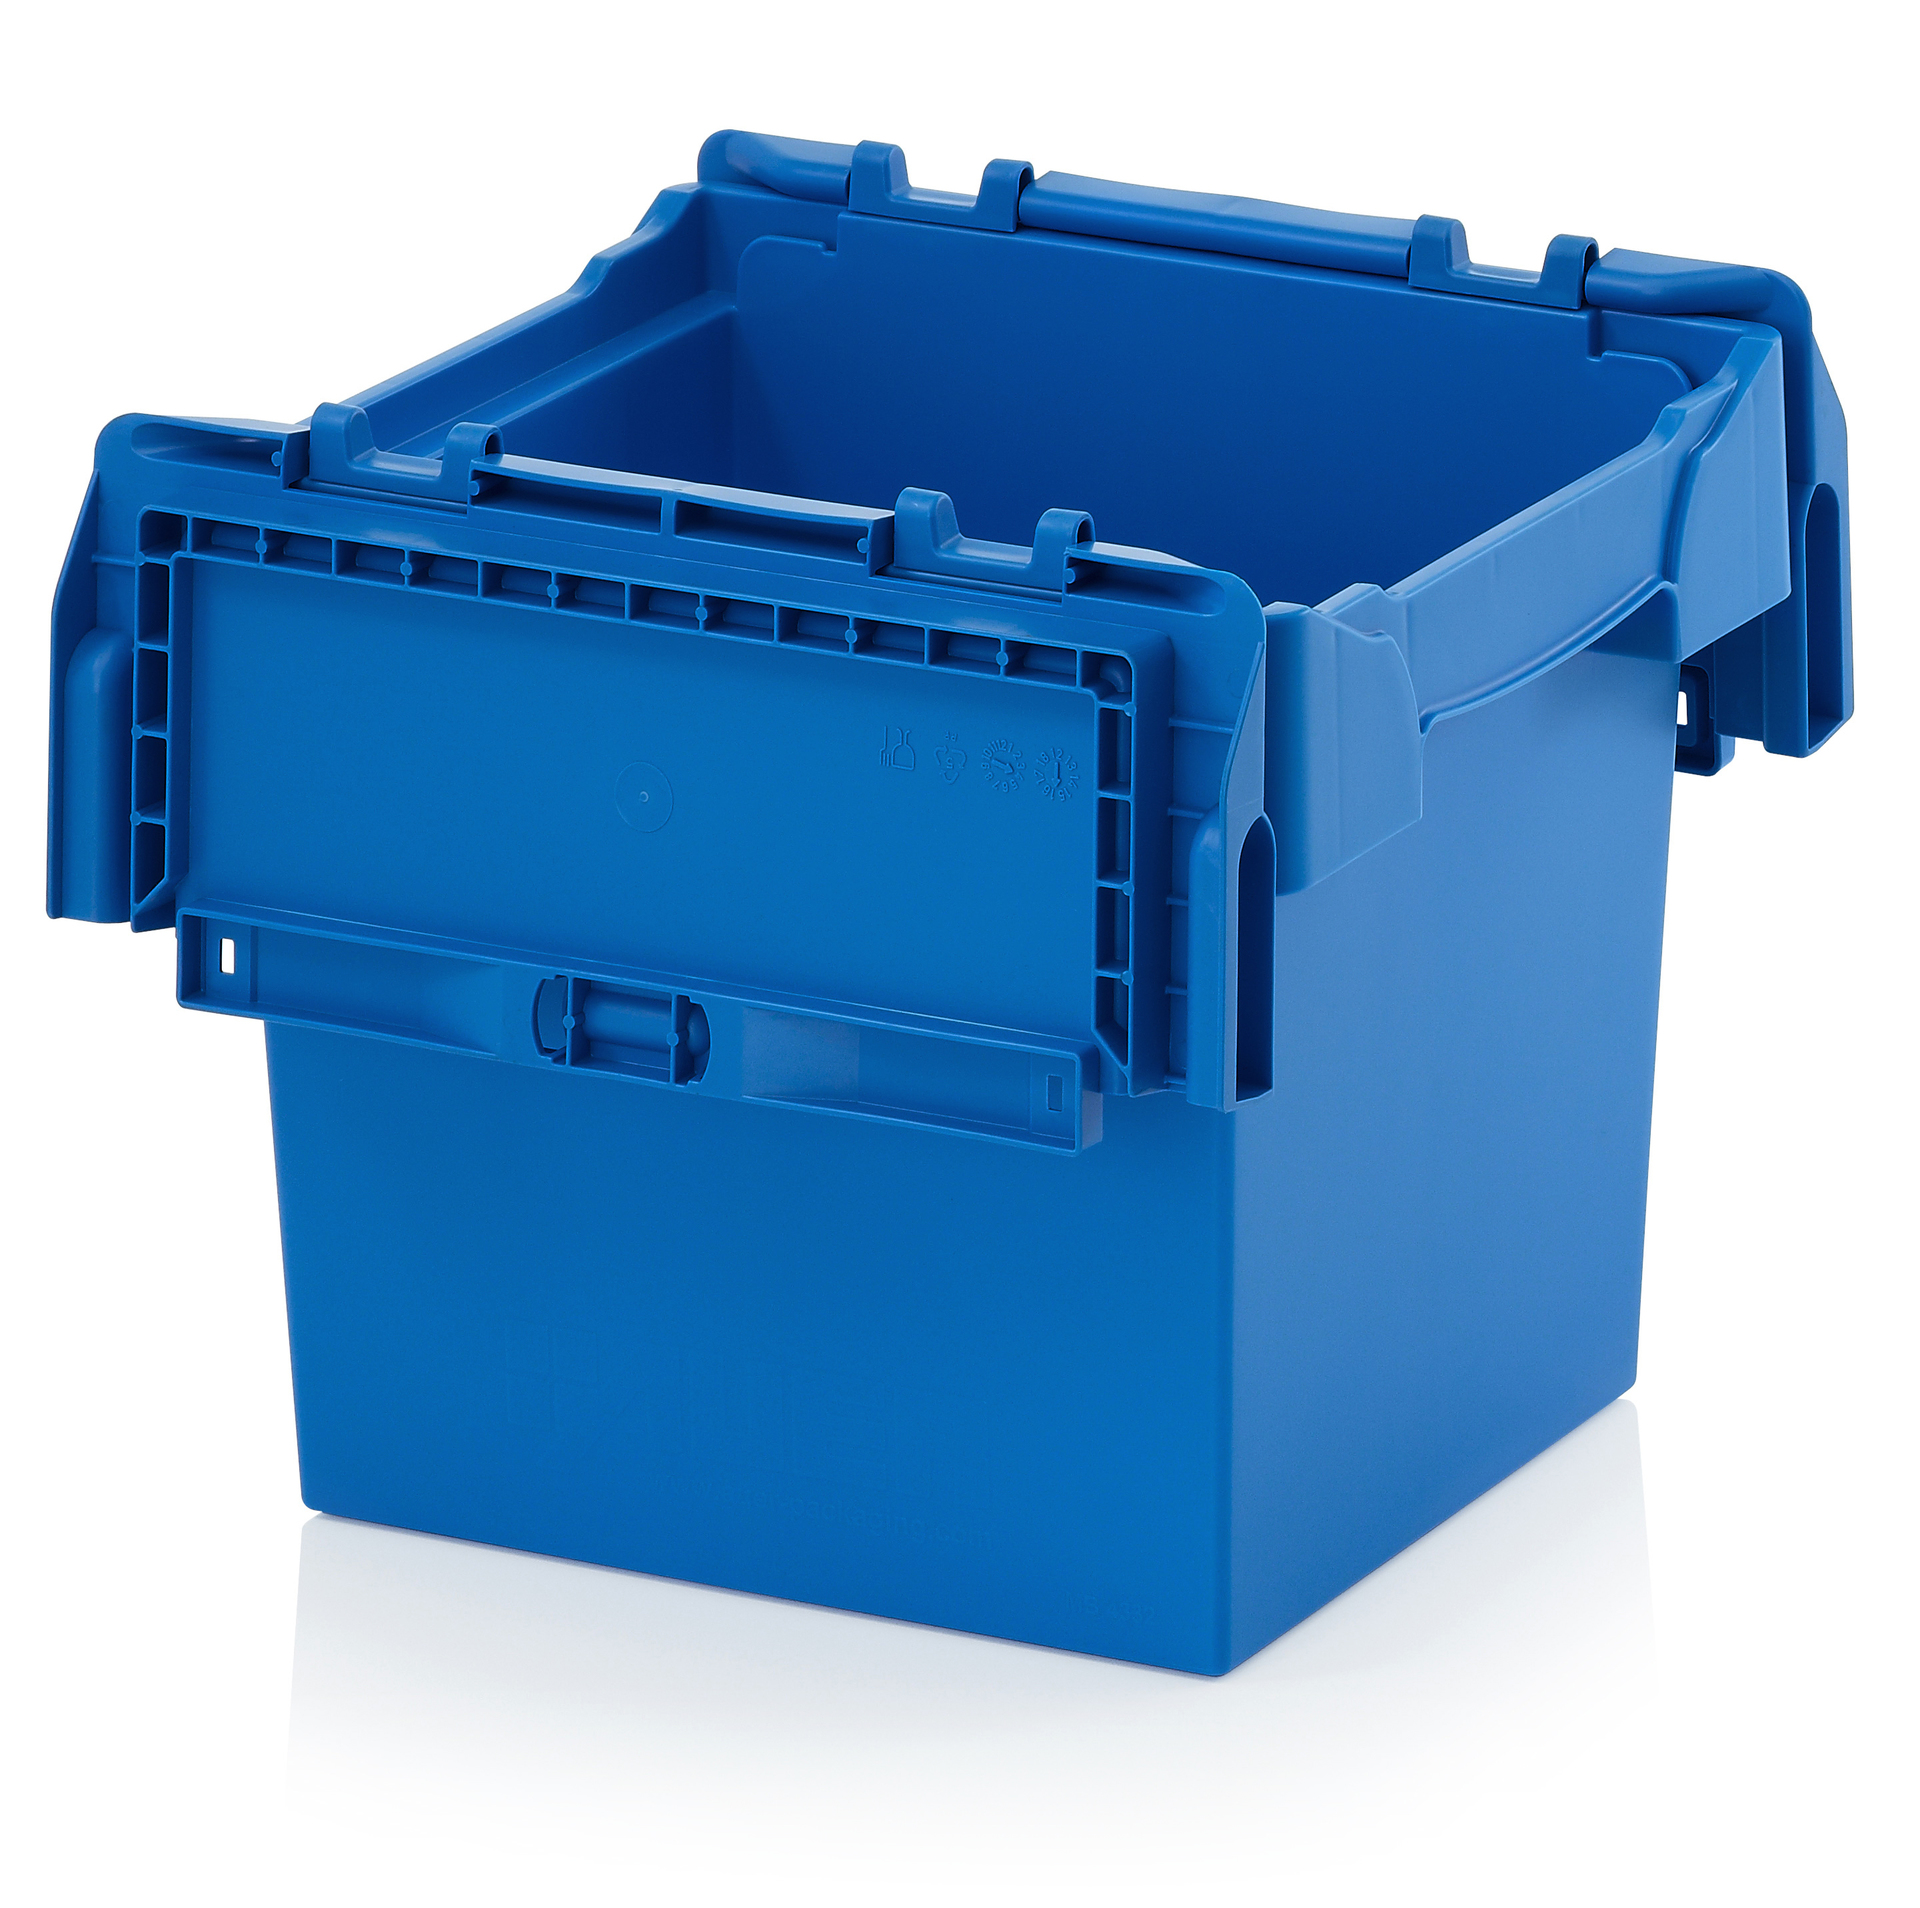 RC4320L_3 Reusable Containers - Plastic Mouldings Northern